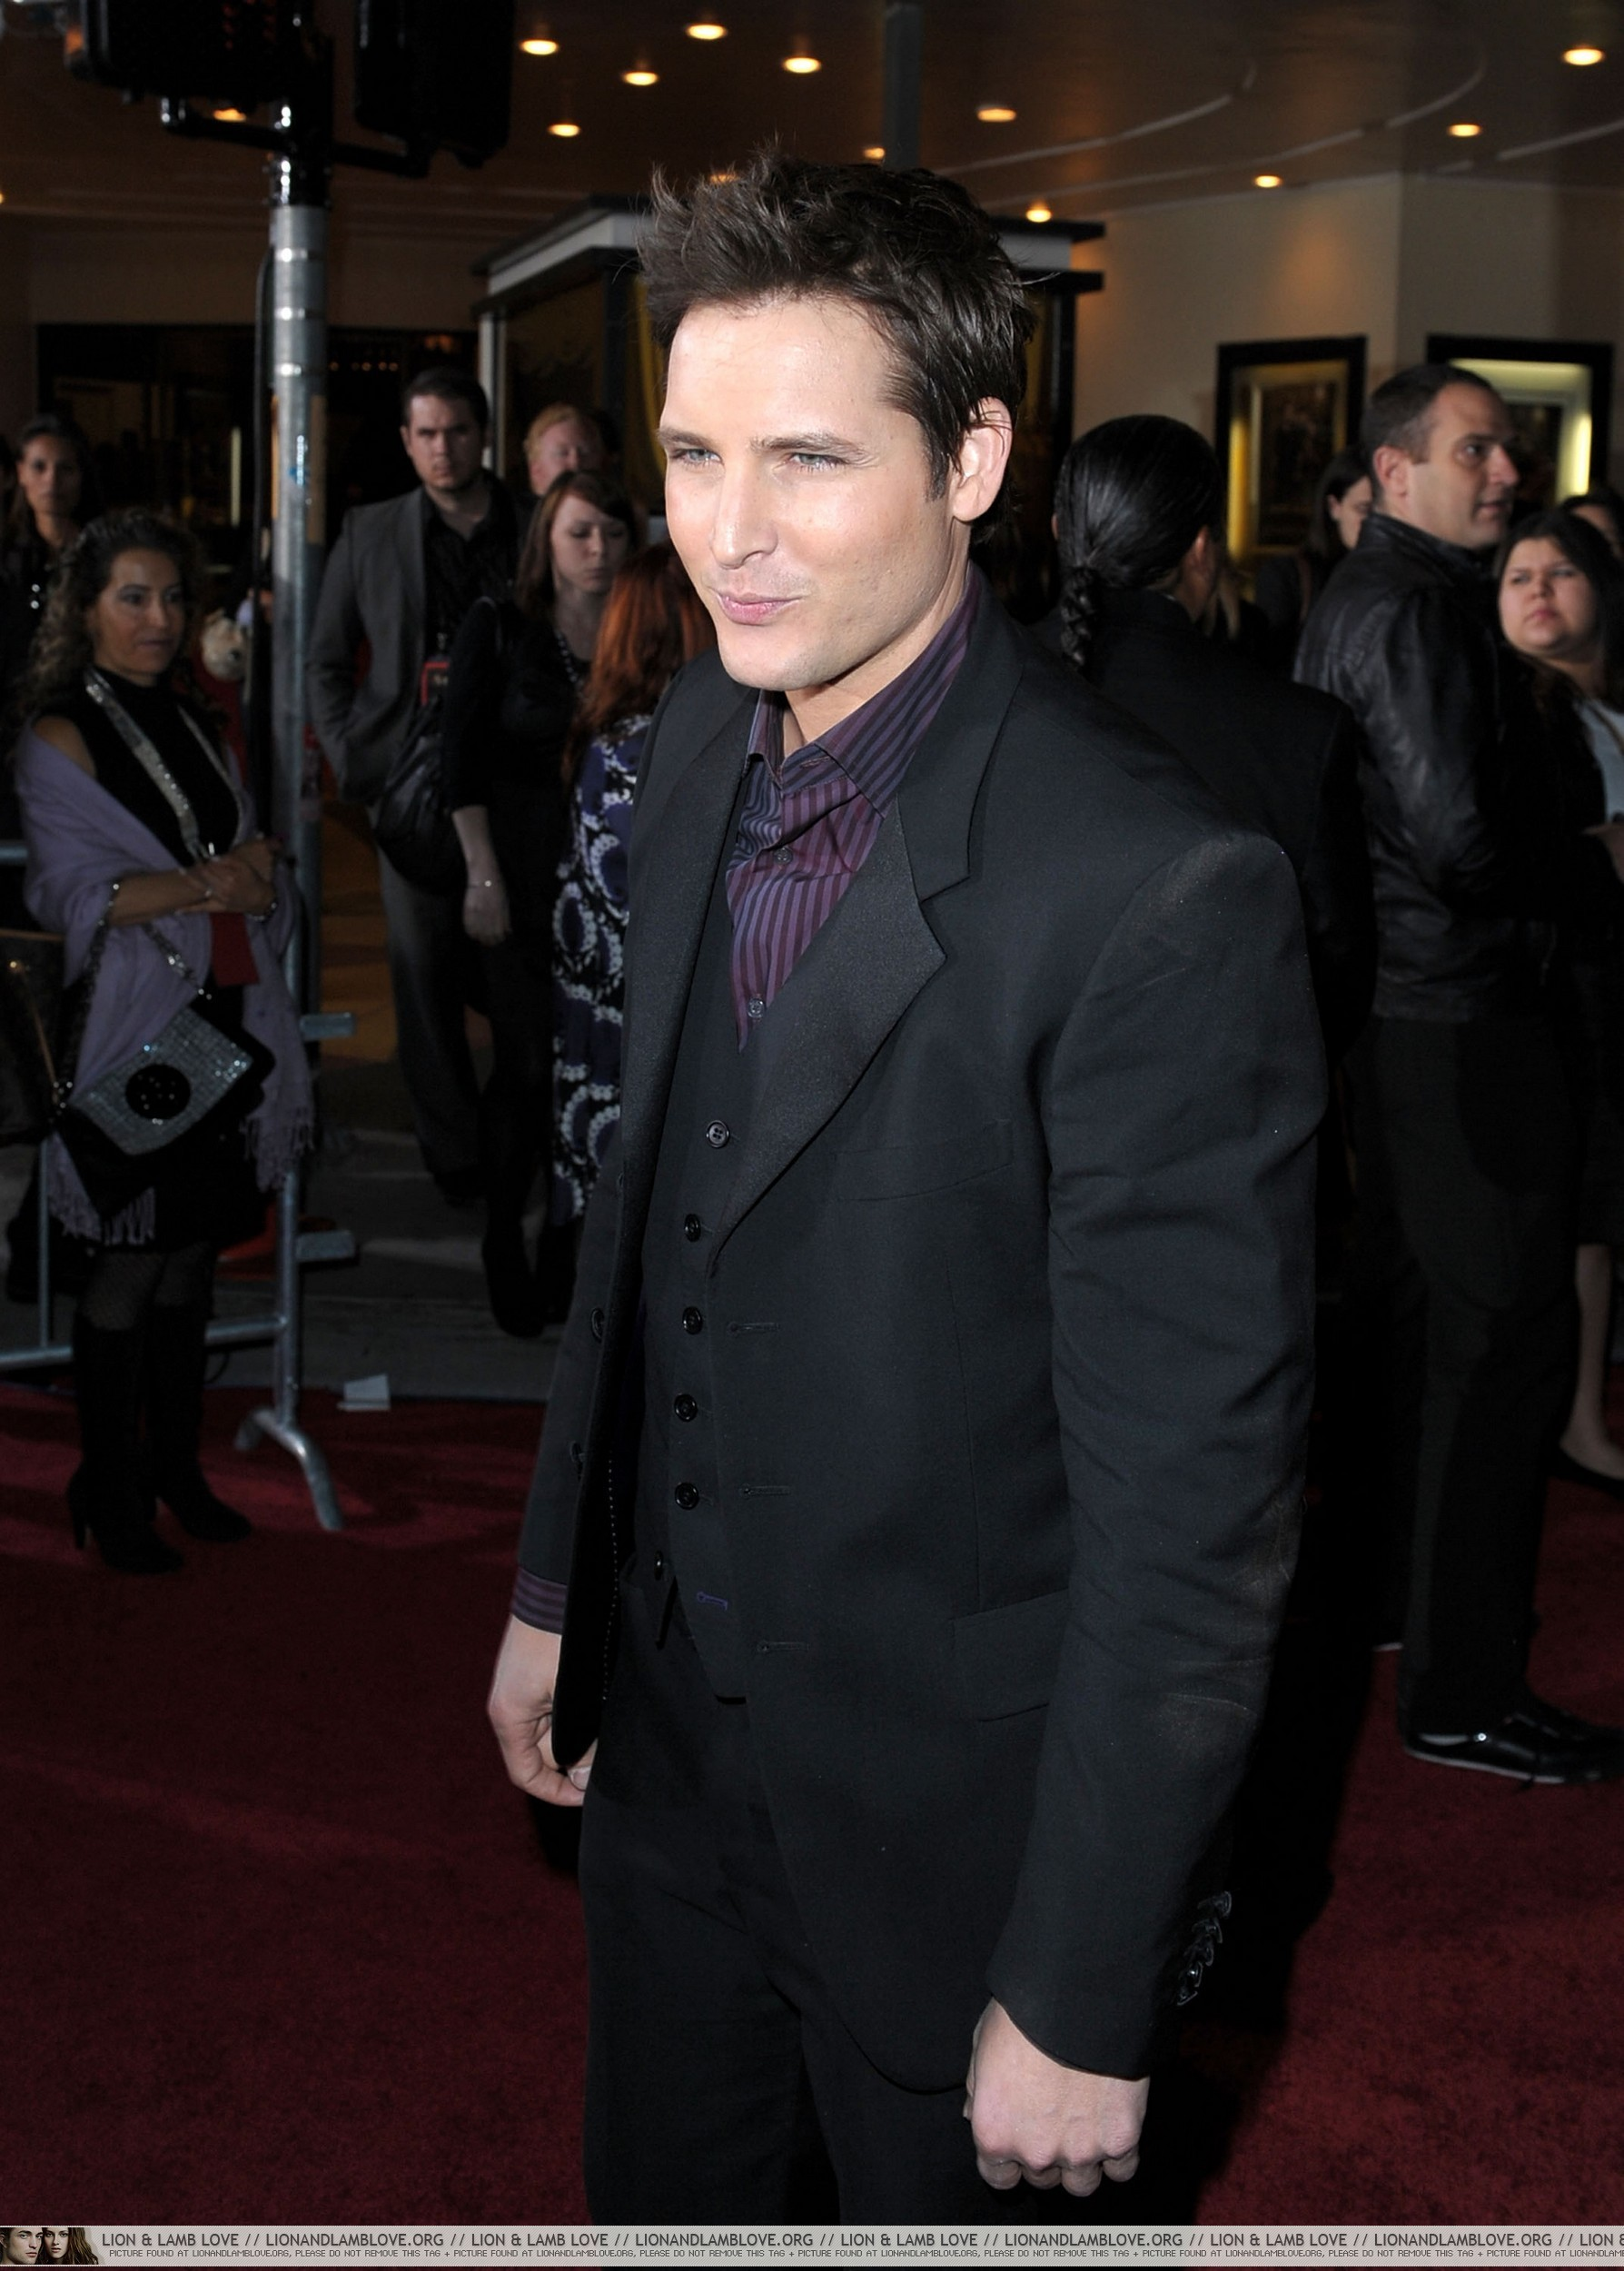 http://images2.fanpop.com/image/photos/9000000/New-Moon-premiere-twilight-series-9087360-1788-2500.jpg